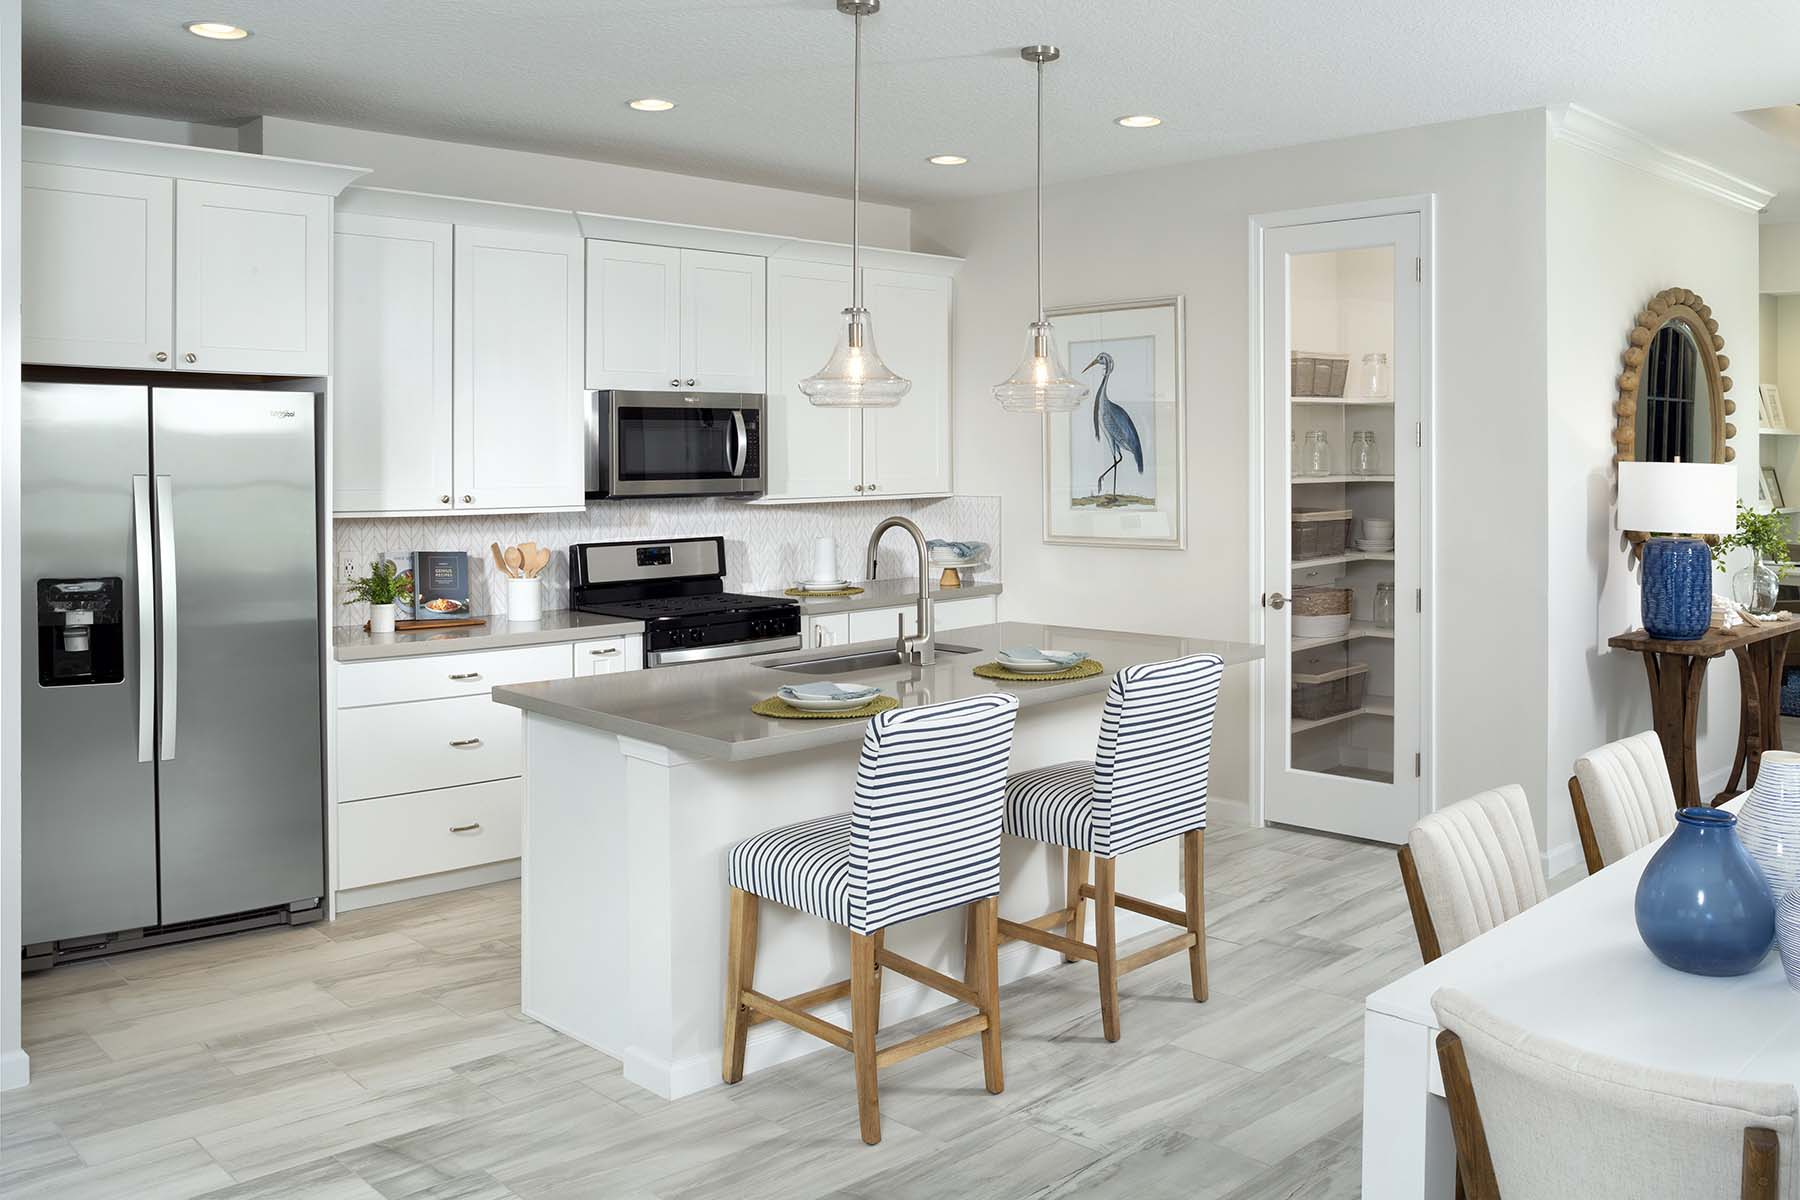 Aspen Plan Kitchen at Tradition - Manderlie in Port St. Lucie Florida by Mattamy Homes